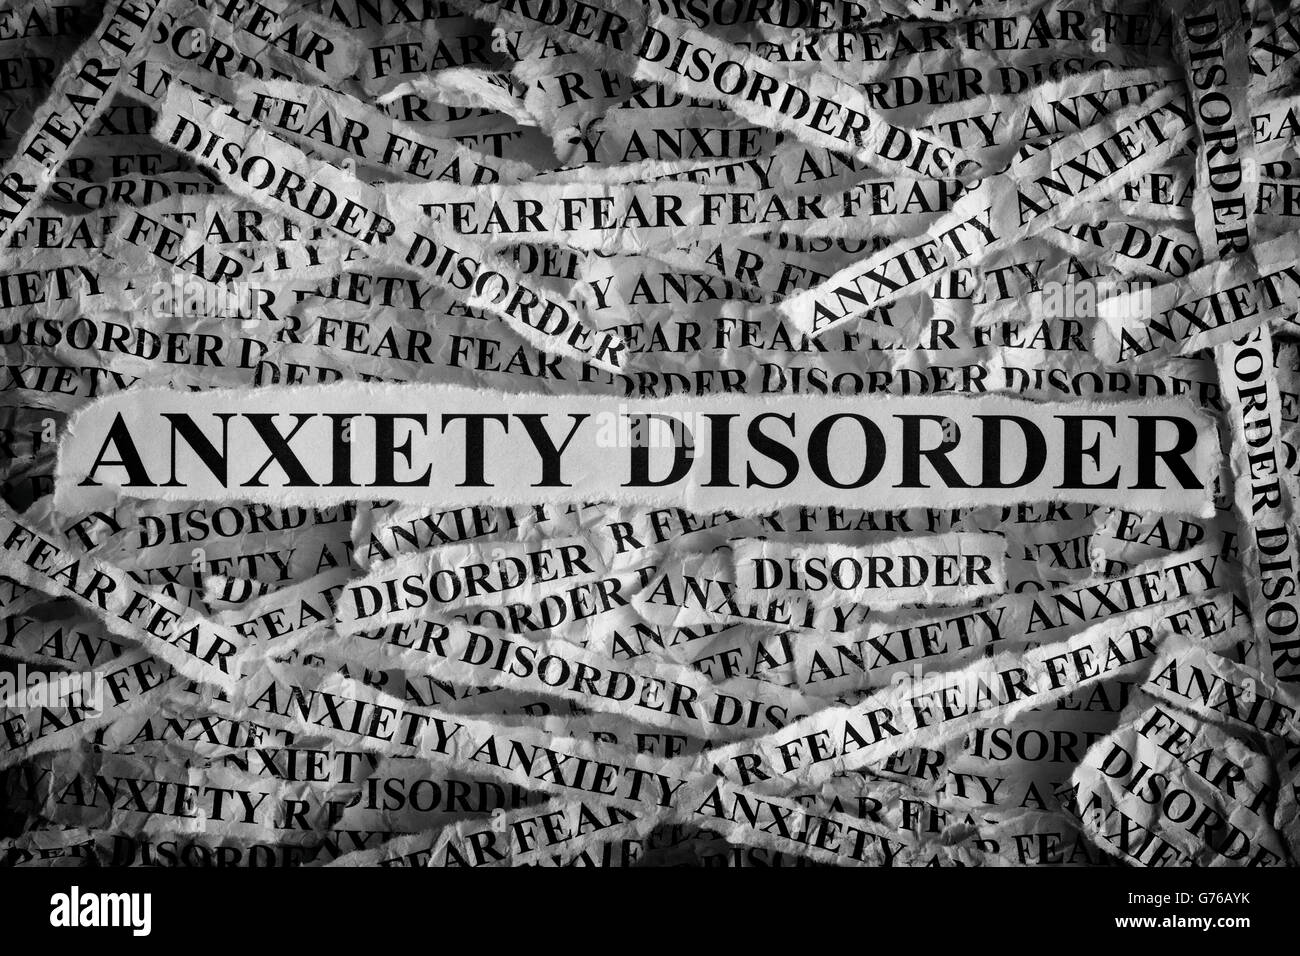 Anxiety Disorder. Torn pieces of paper with the words Anxiety Disorder. Concept Image. Black and White. Closeup. - Stock Image